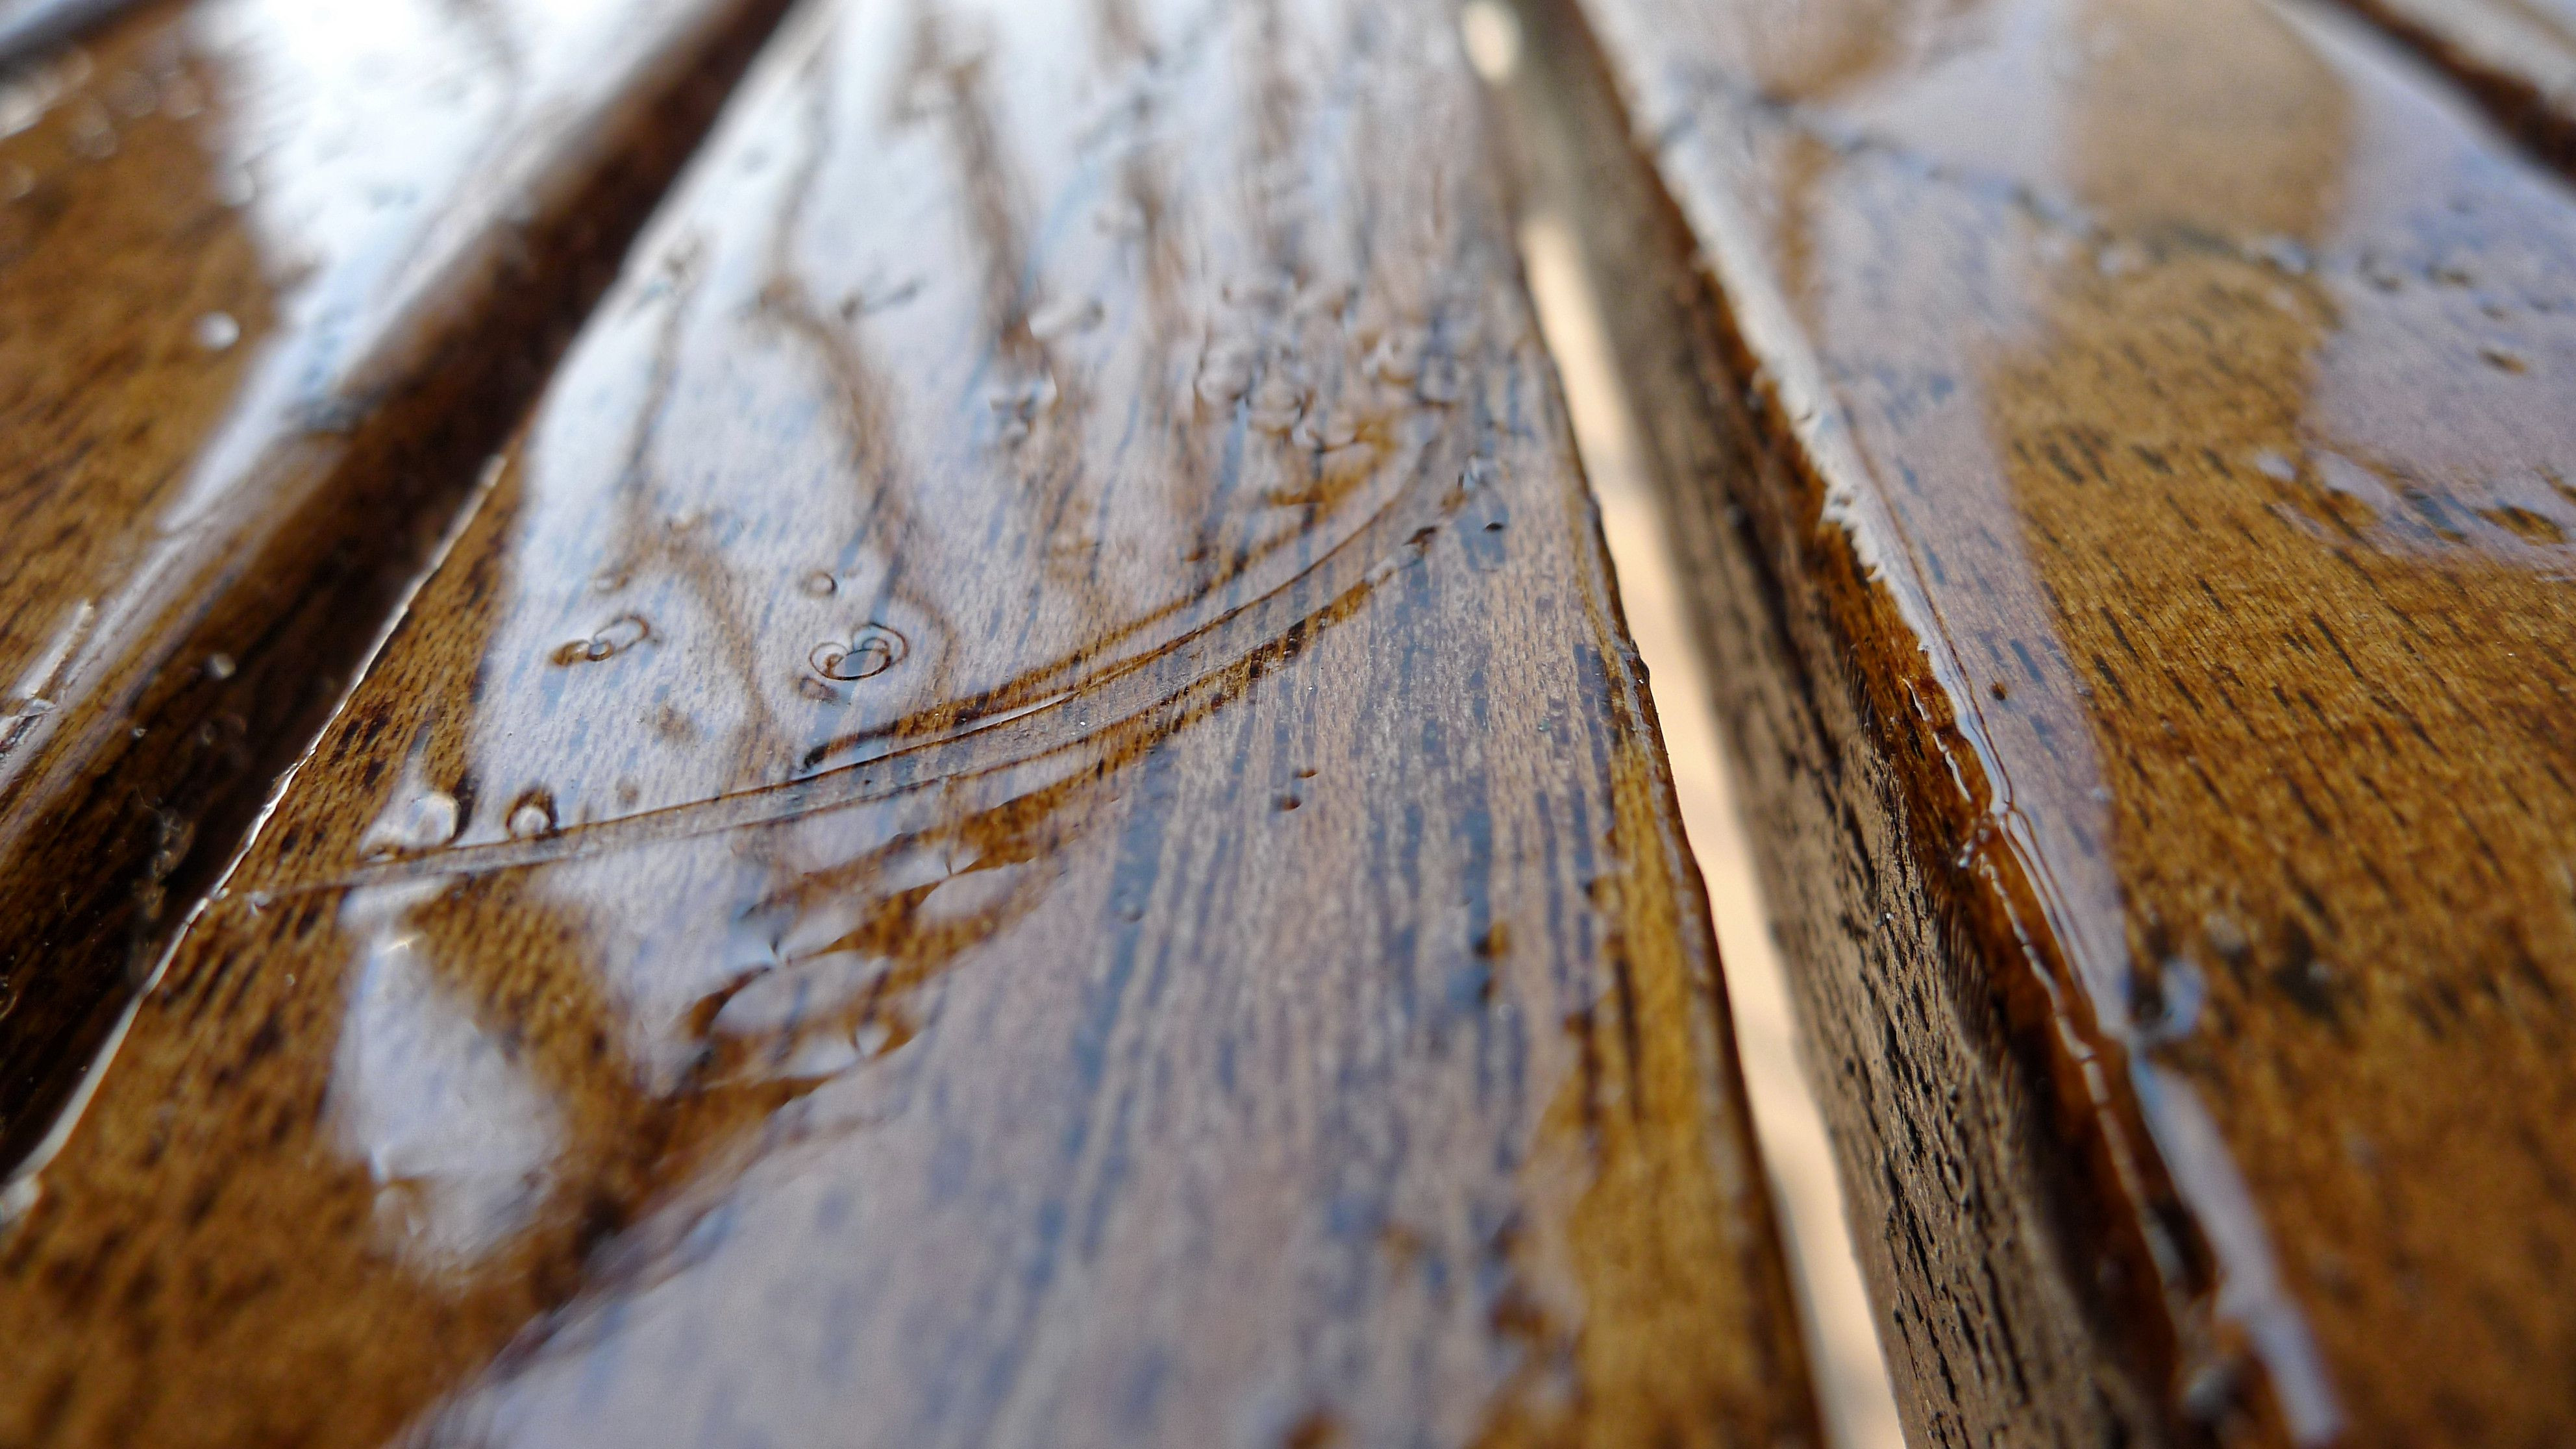 11 Unique Refinishing Hardwood Floors Filling Gaps 2021 free download refinishing hardwood floors filling gaps of how to save your water damaged wood floors intended for close up view of wet water surface 565793123 57ef31f73df78c690f863cff